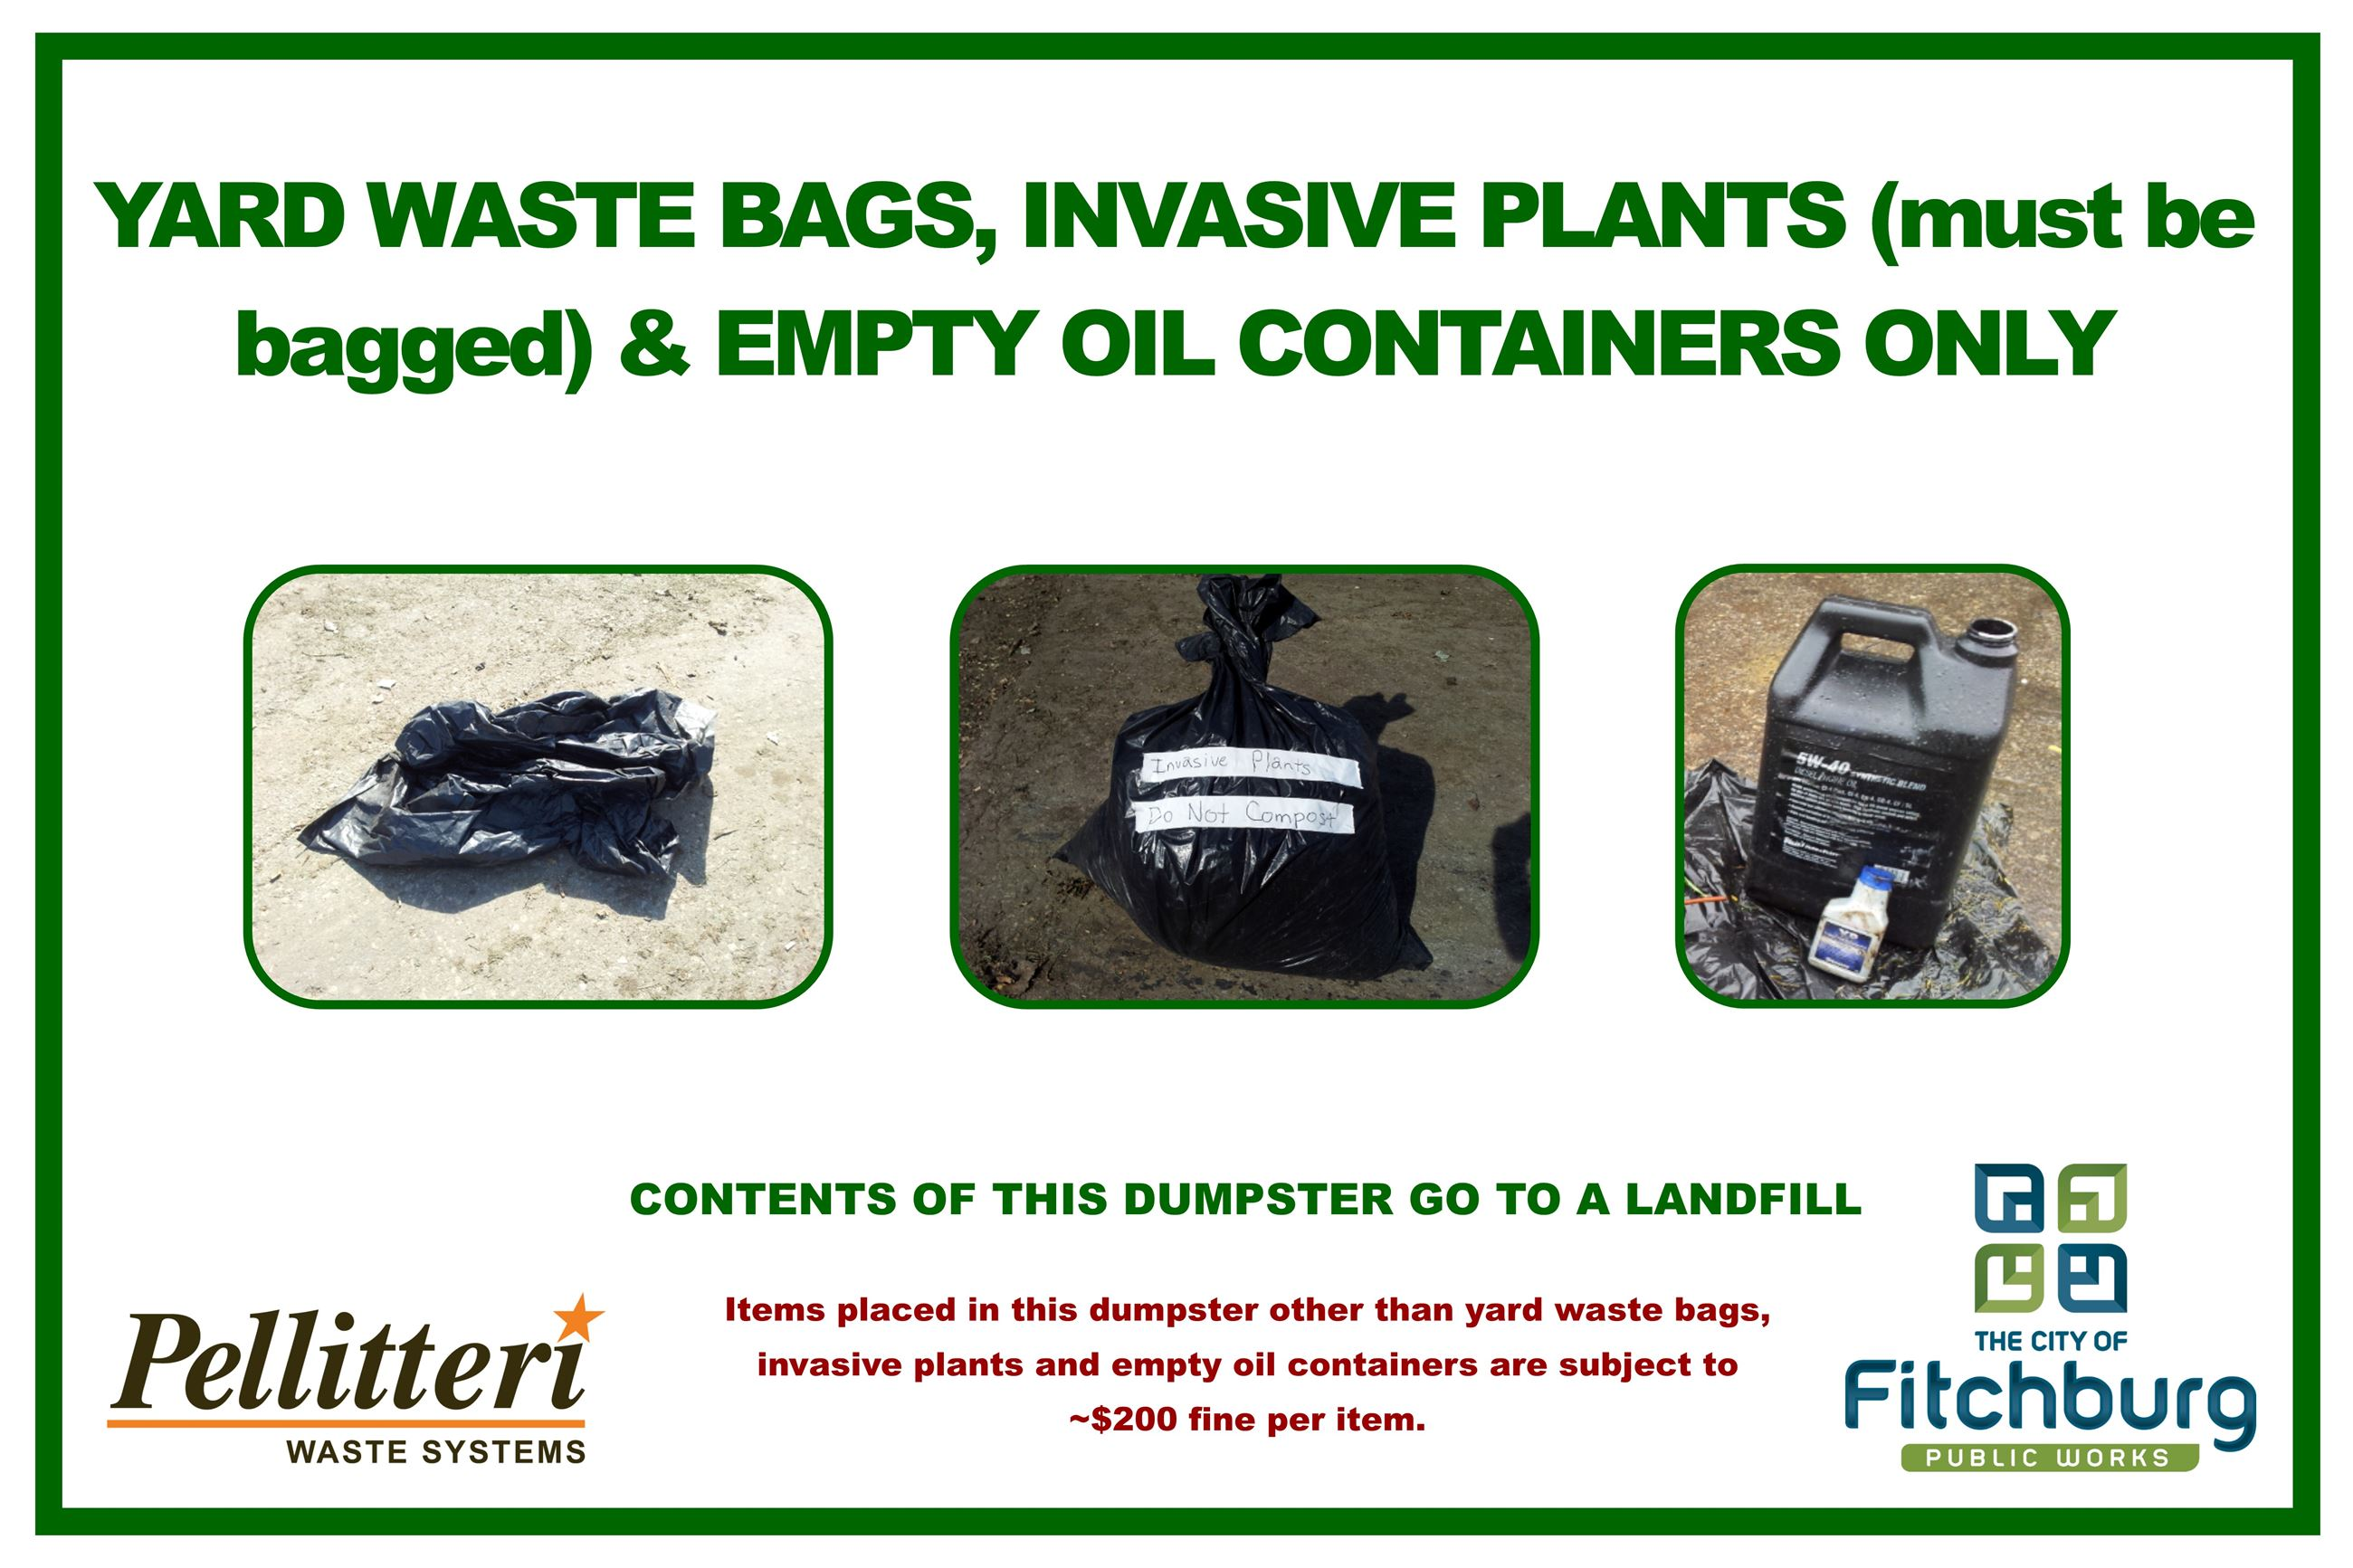 YardWaste Bag and Oil Container 3x2 2013-09-17